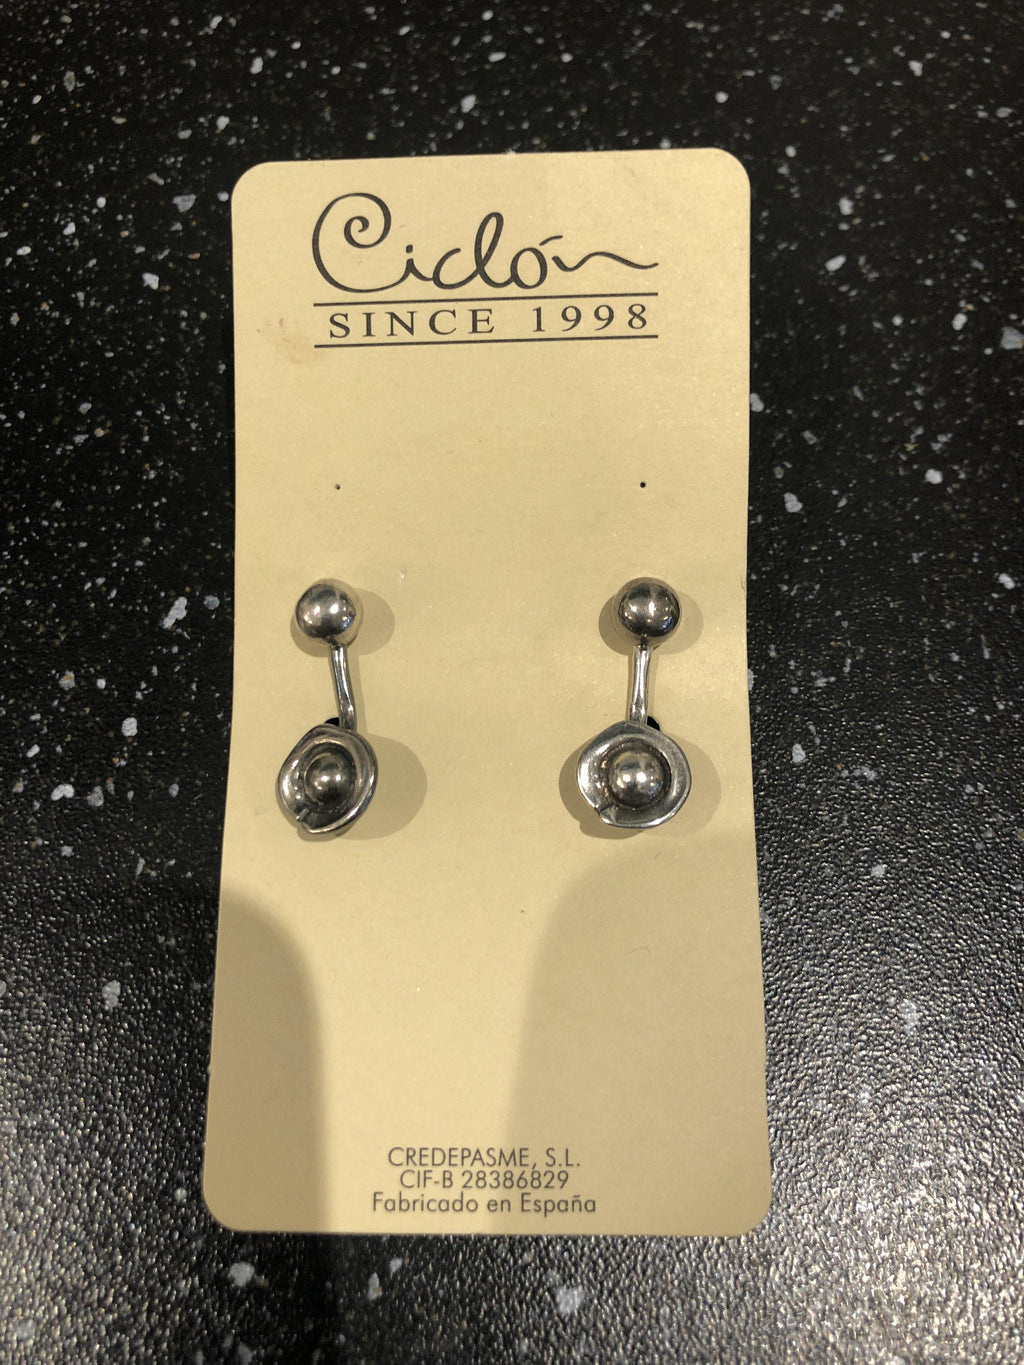 Ciclon silver earrings with silver pearl